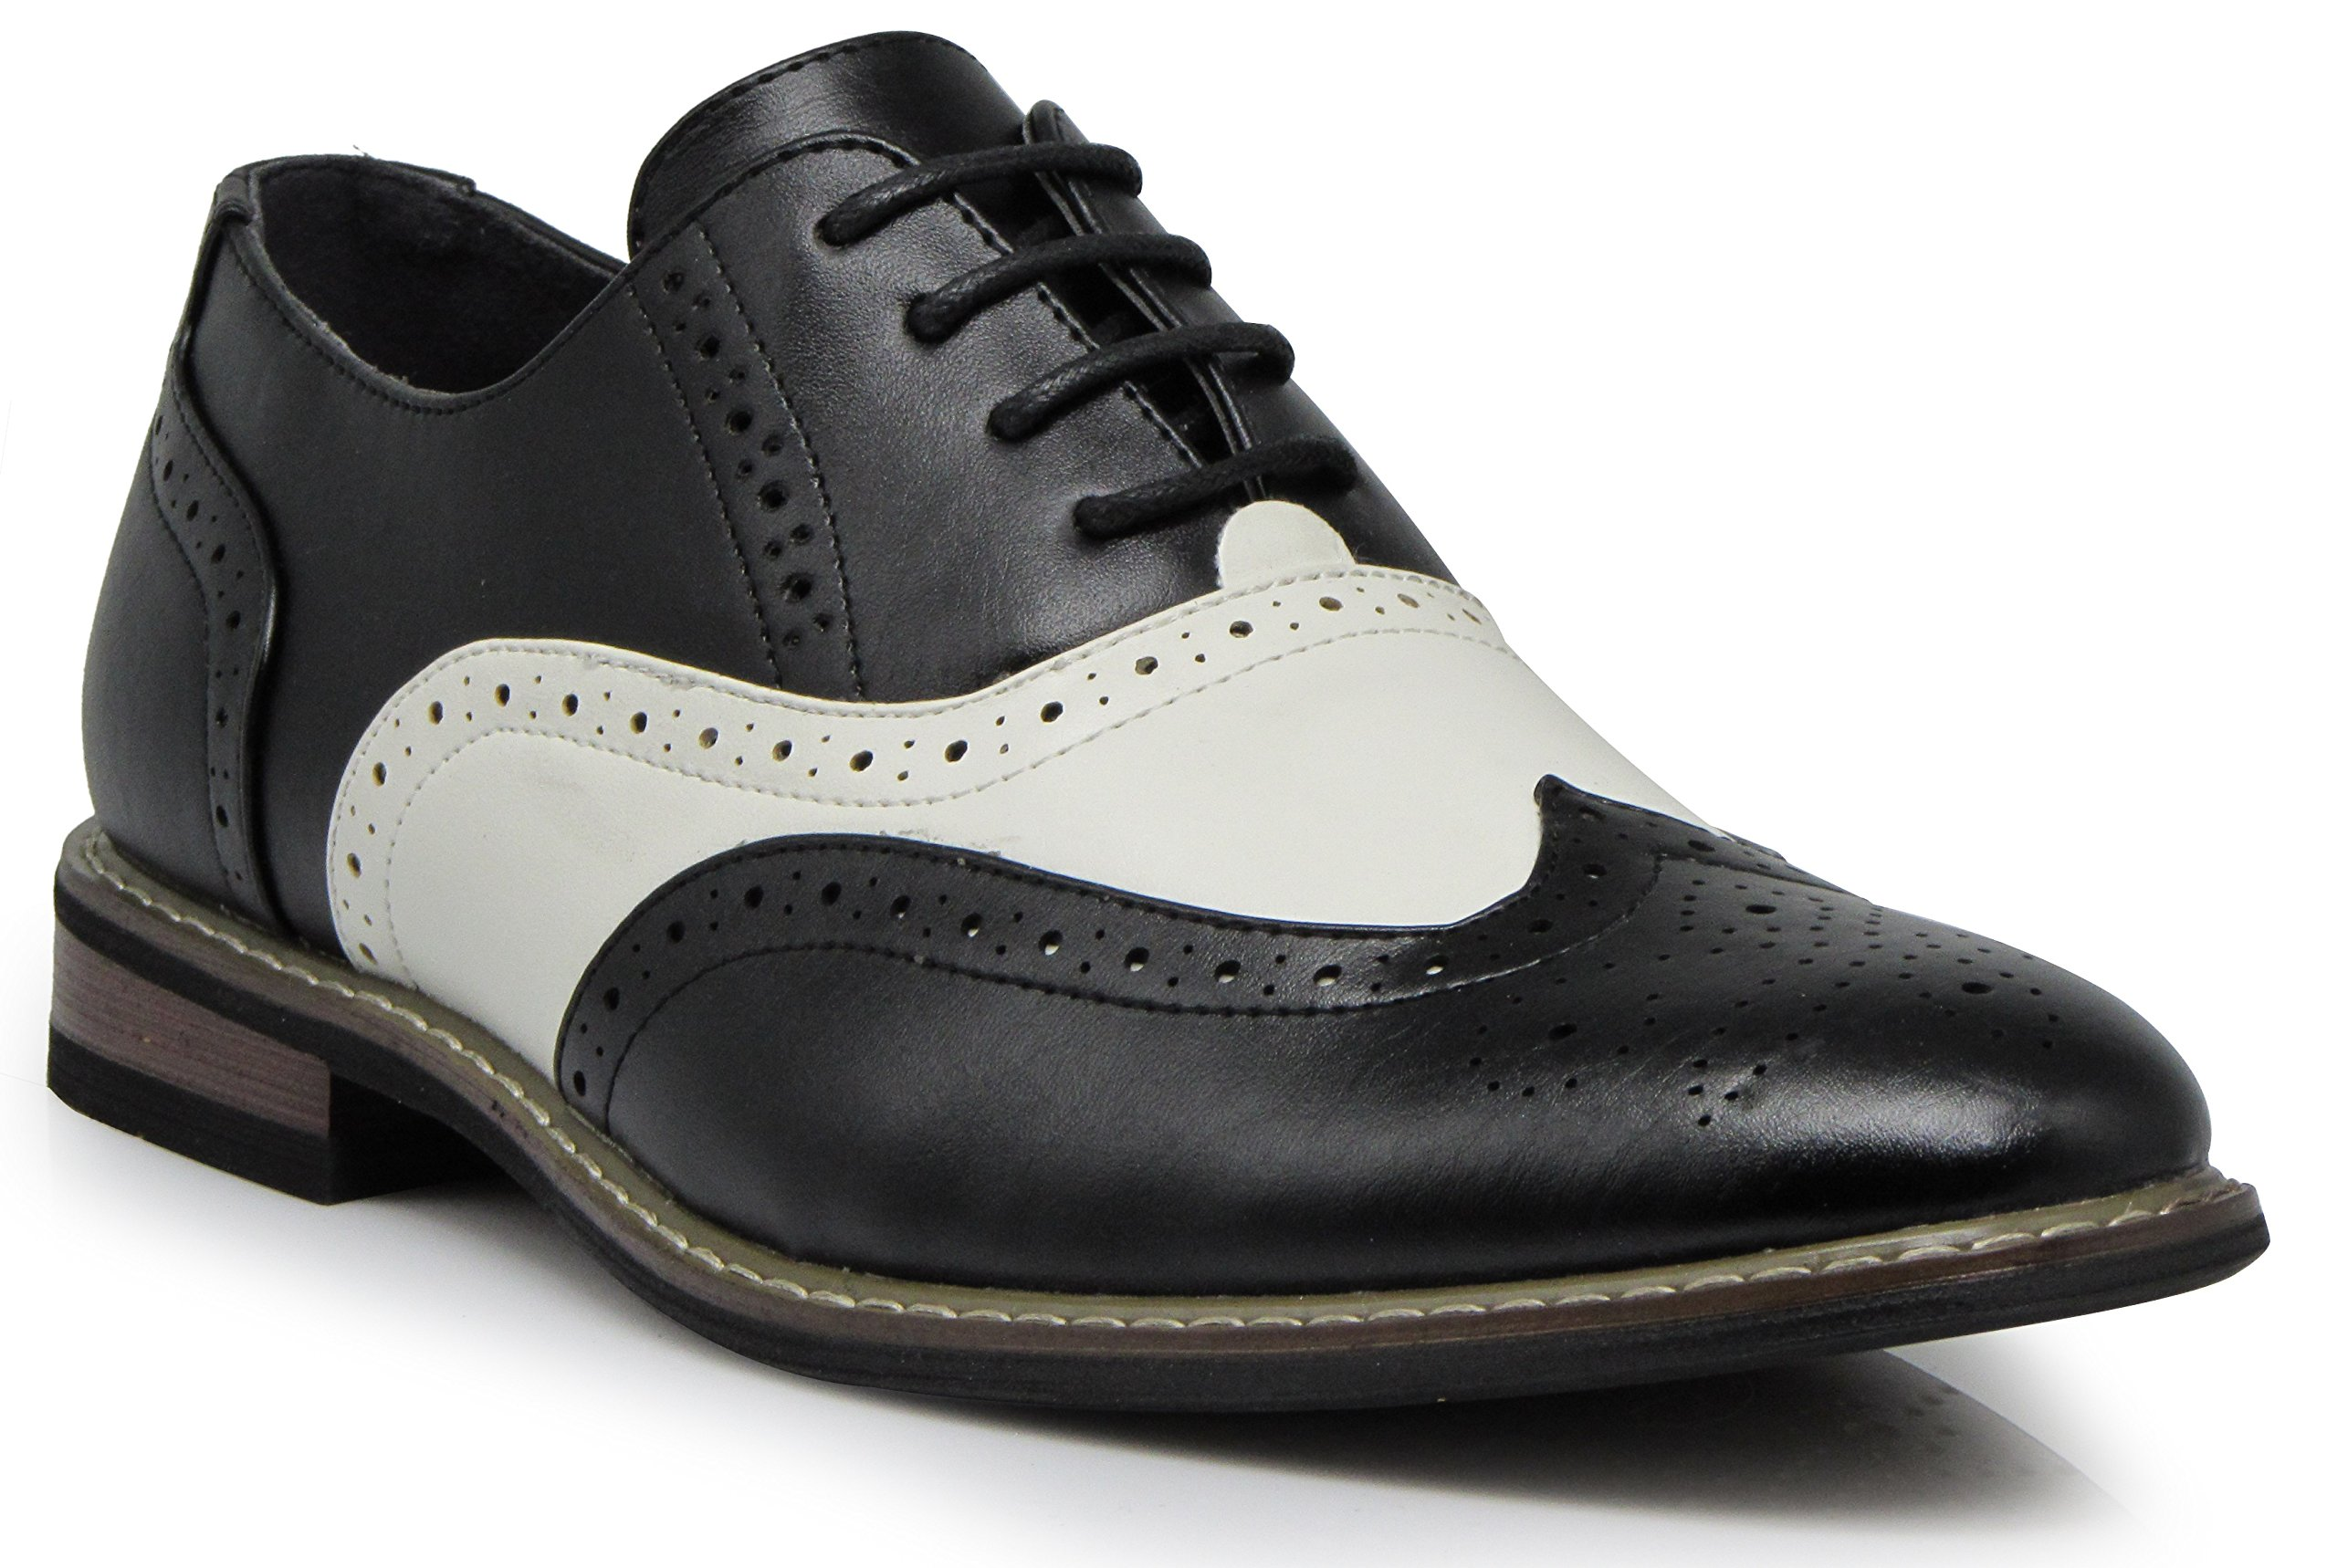 Wood8 Men's Two Tone Wingtips Oxfords Perforated Lace up Dress Shoes (15 D(M) US)